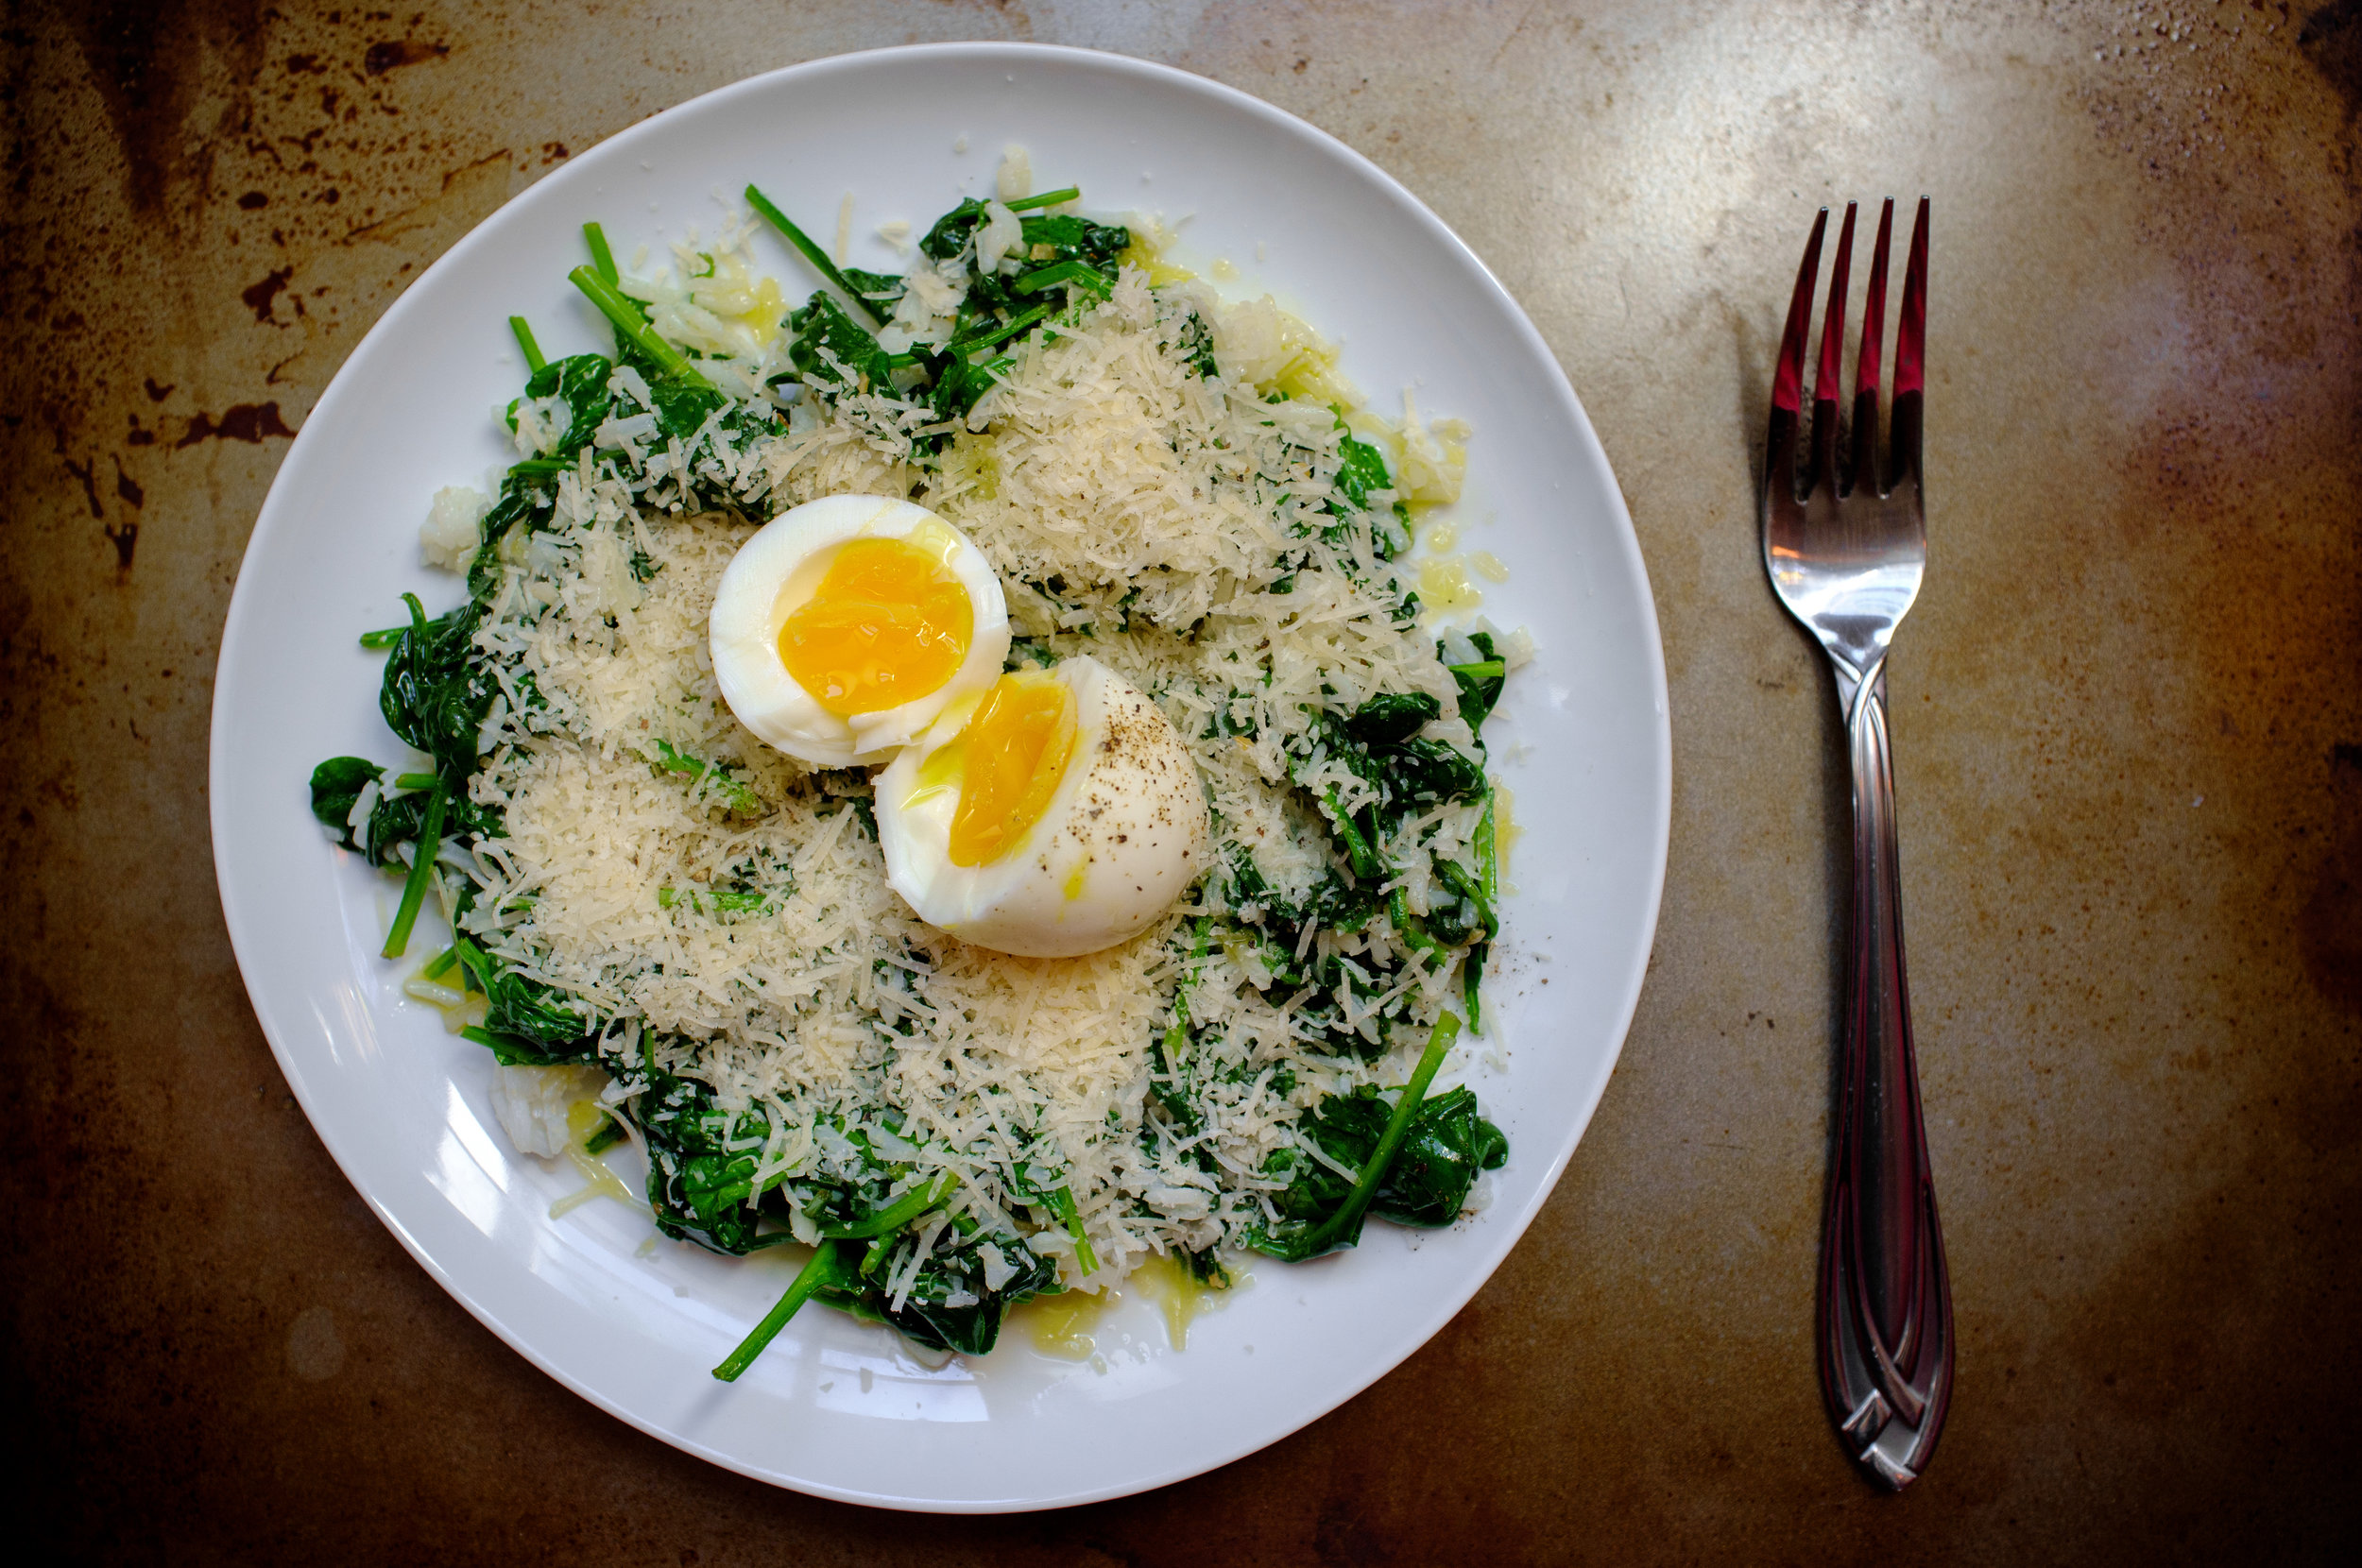 Leftover rice, sautéed spinach and cheese topped with an egg